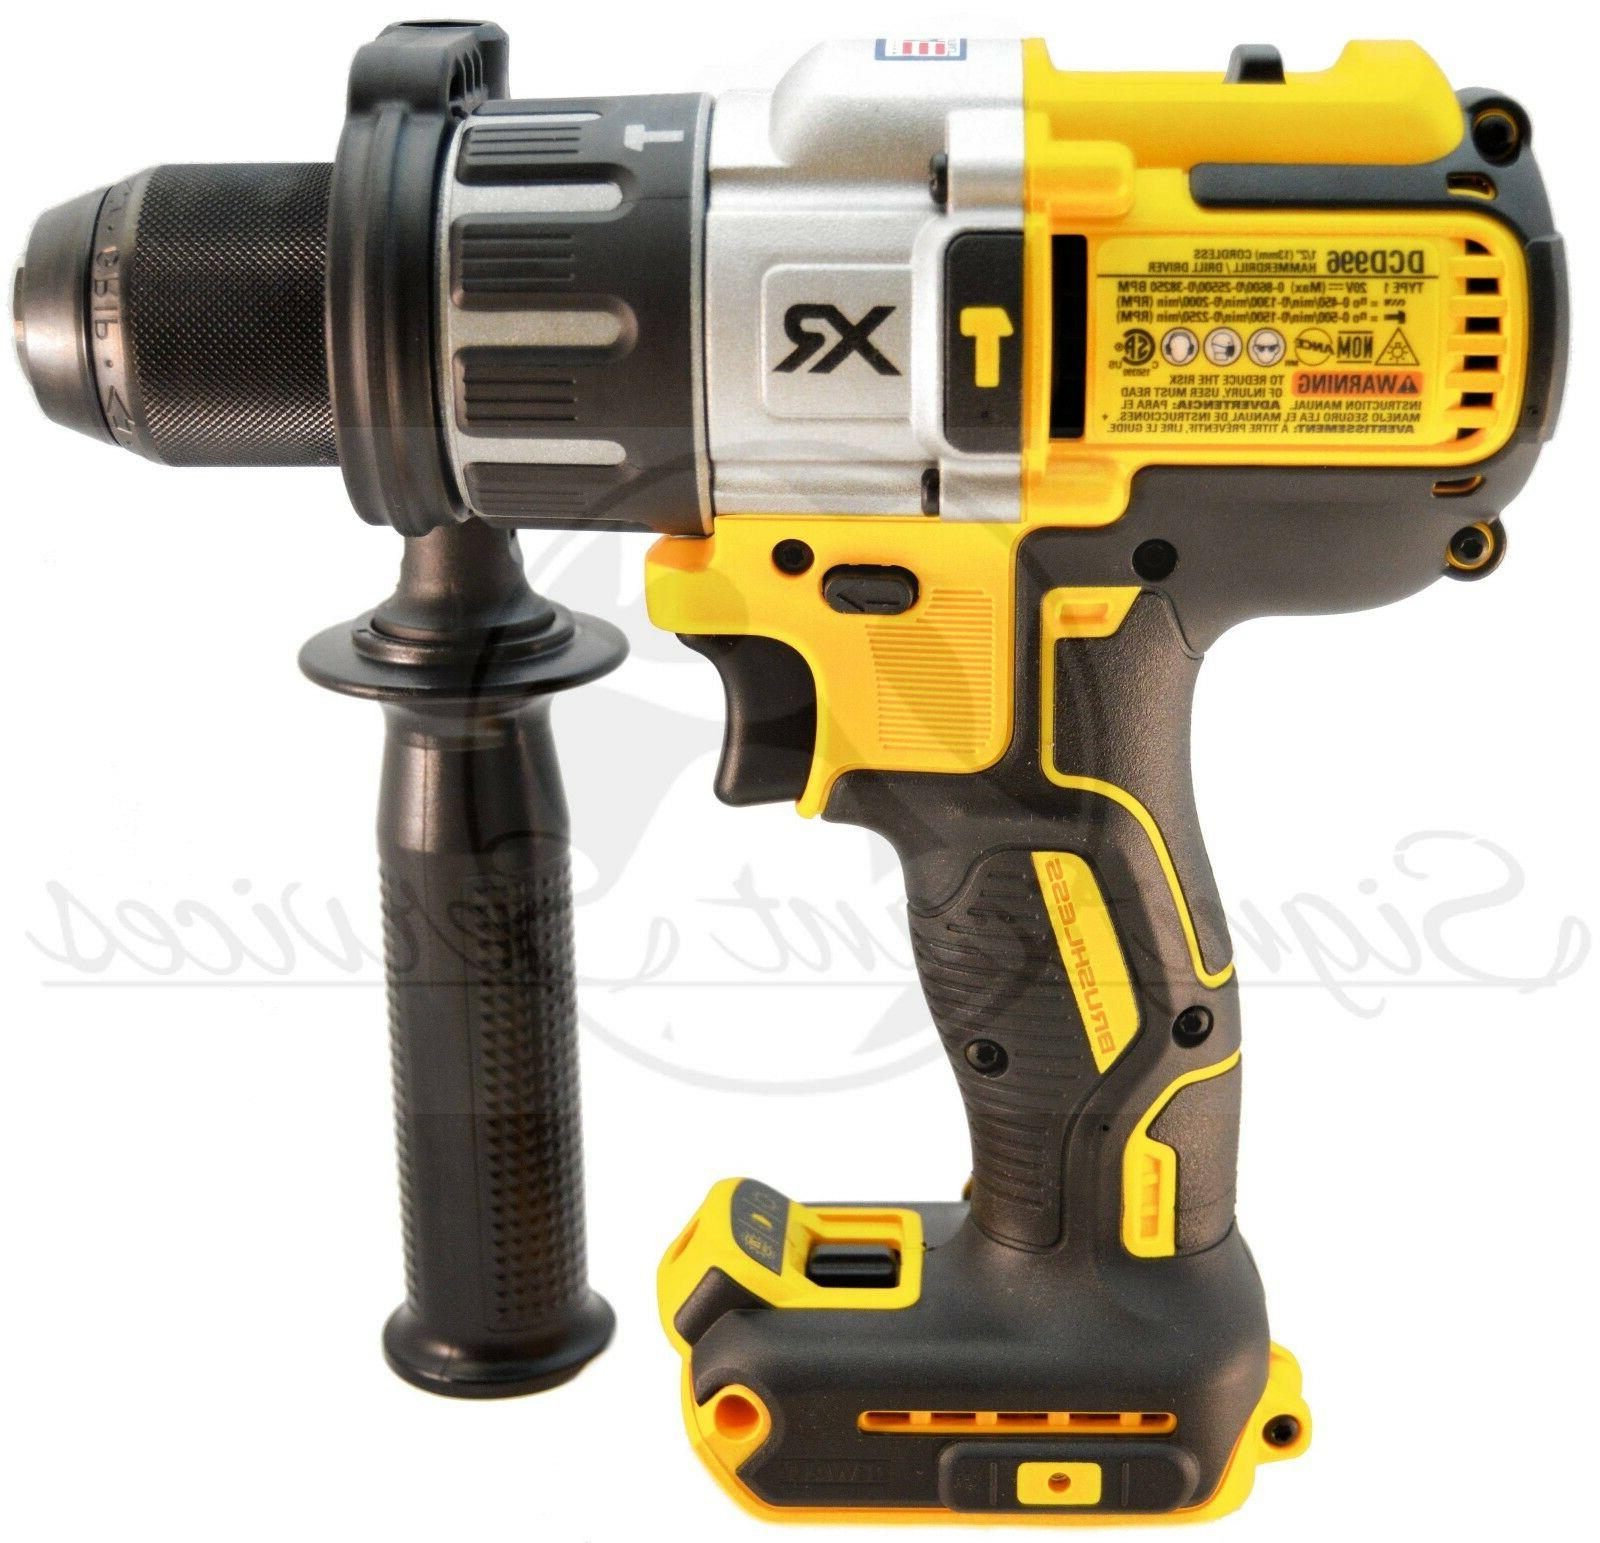 DeWALT XR 3-Speed 1/2 Drill